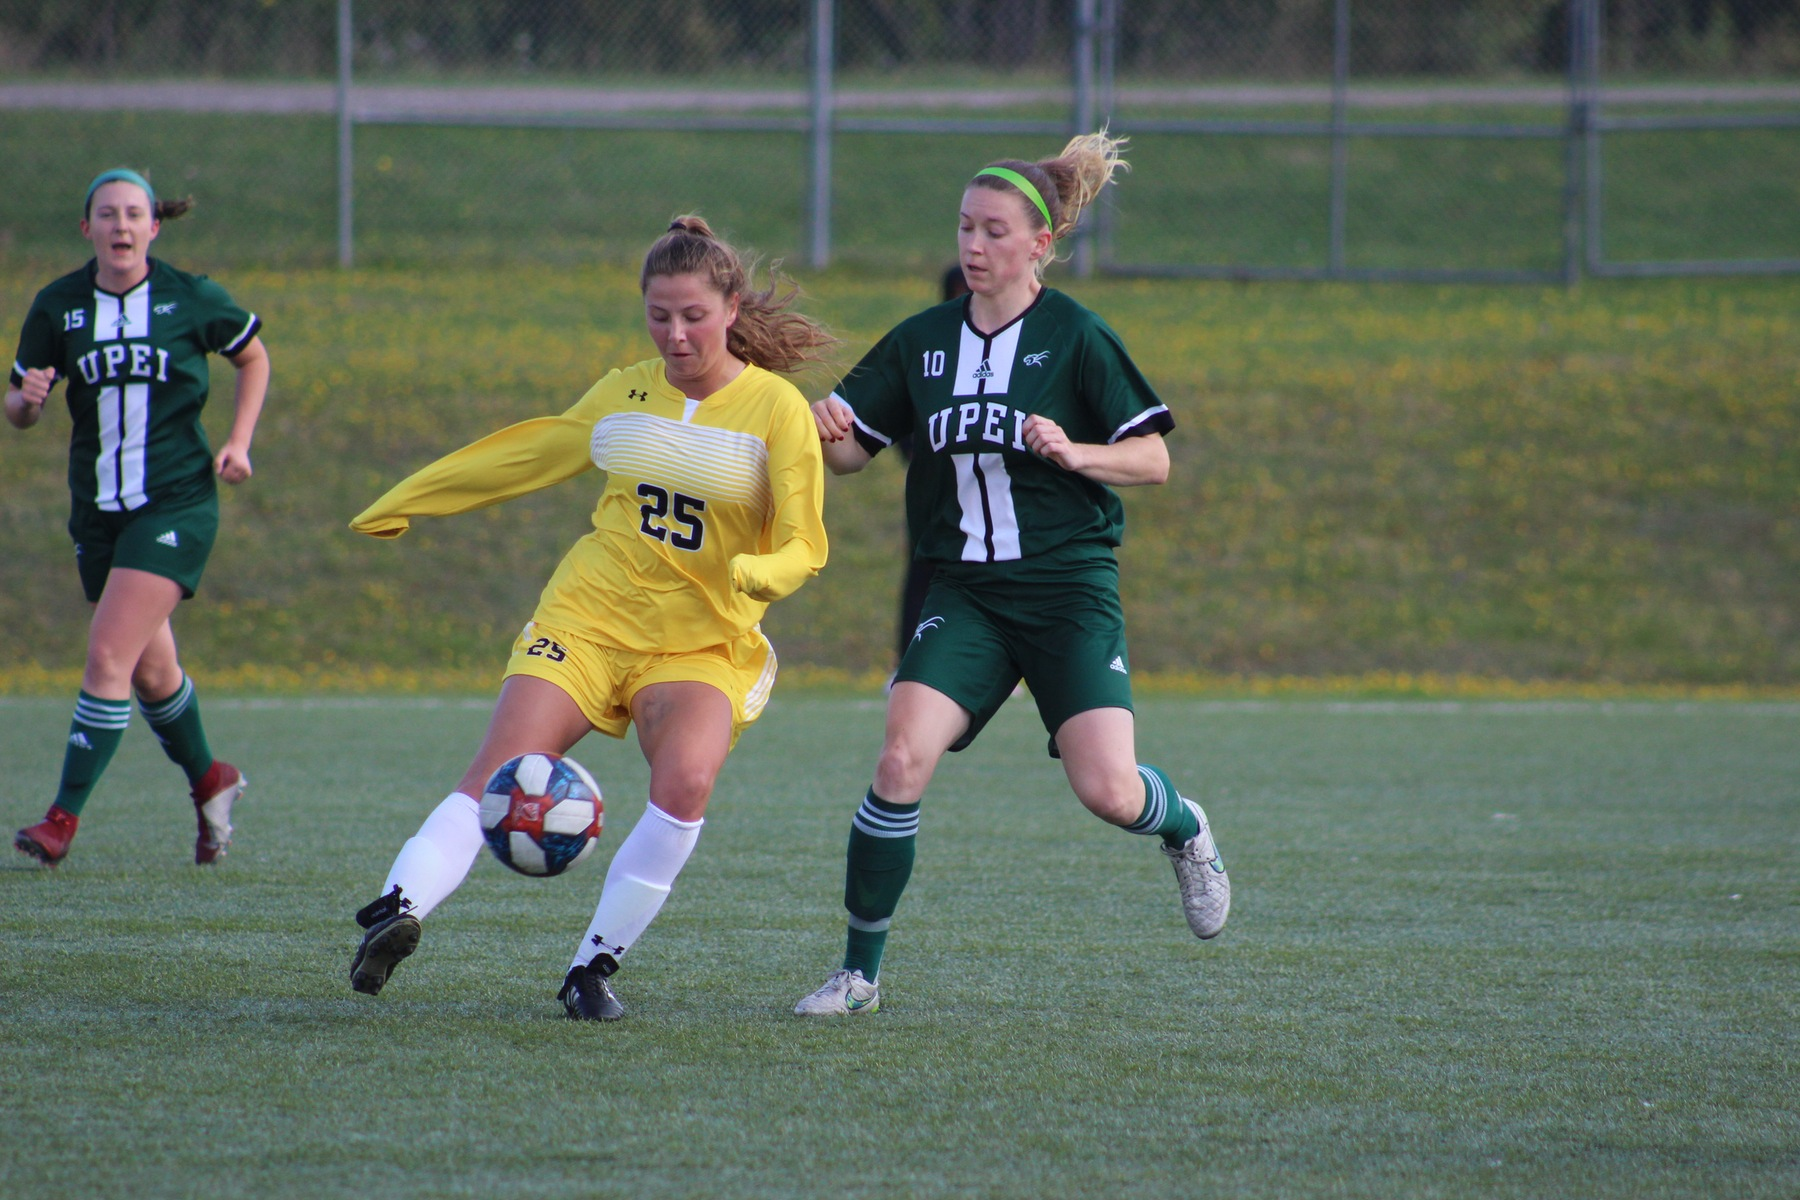 Tigers down UPEI 1-0 with late goal